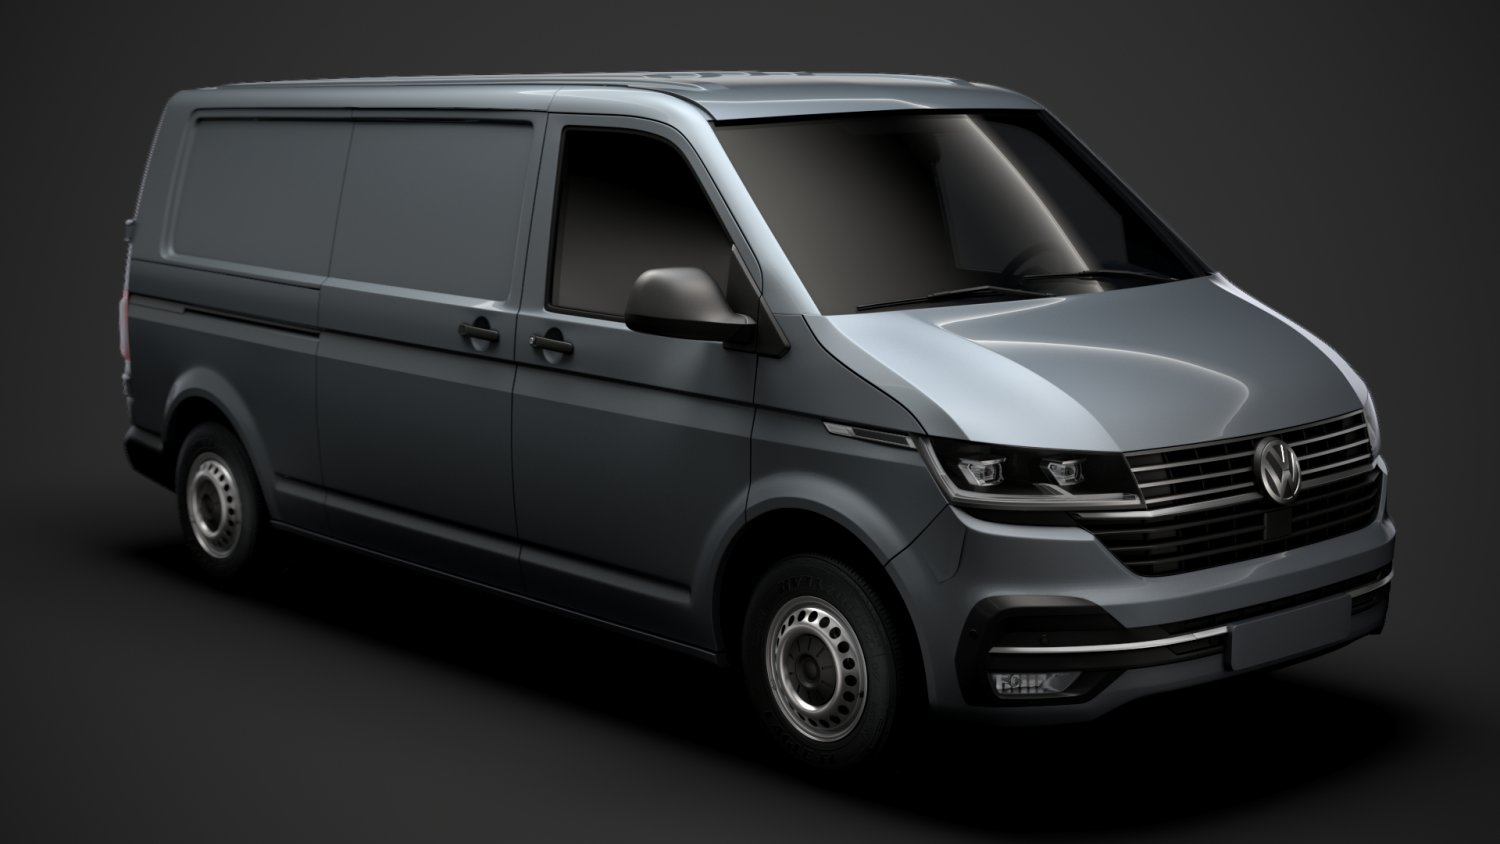 2020 Volkswagen Transporter Research New